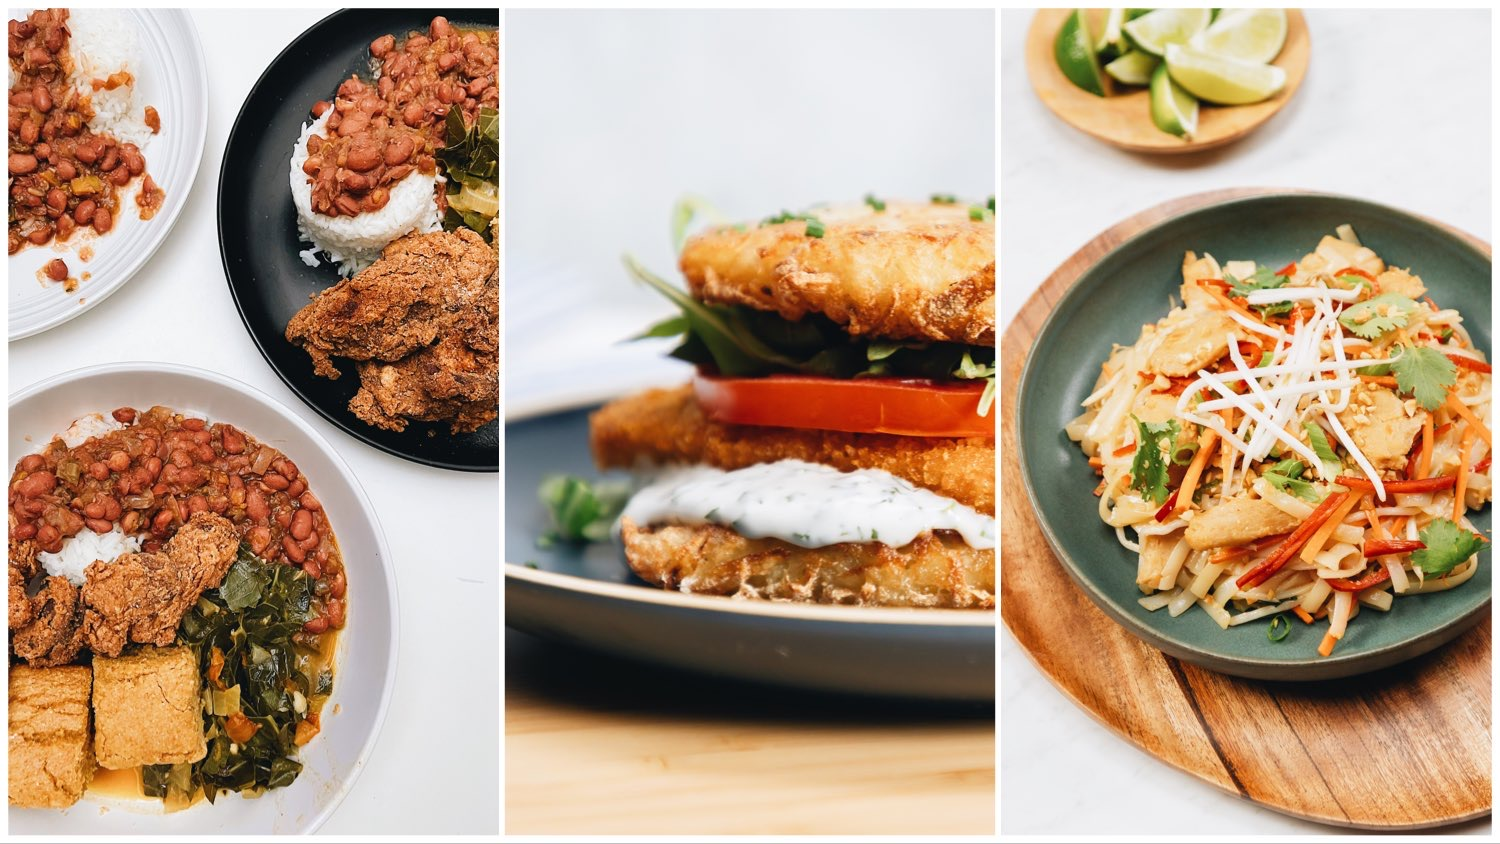 Three way split image featuring photos of a soul food meal (left), a vegan chicken sandwich (center), and orange chicken (right).